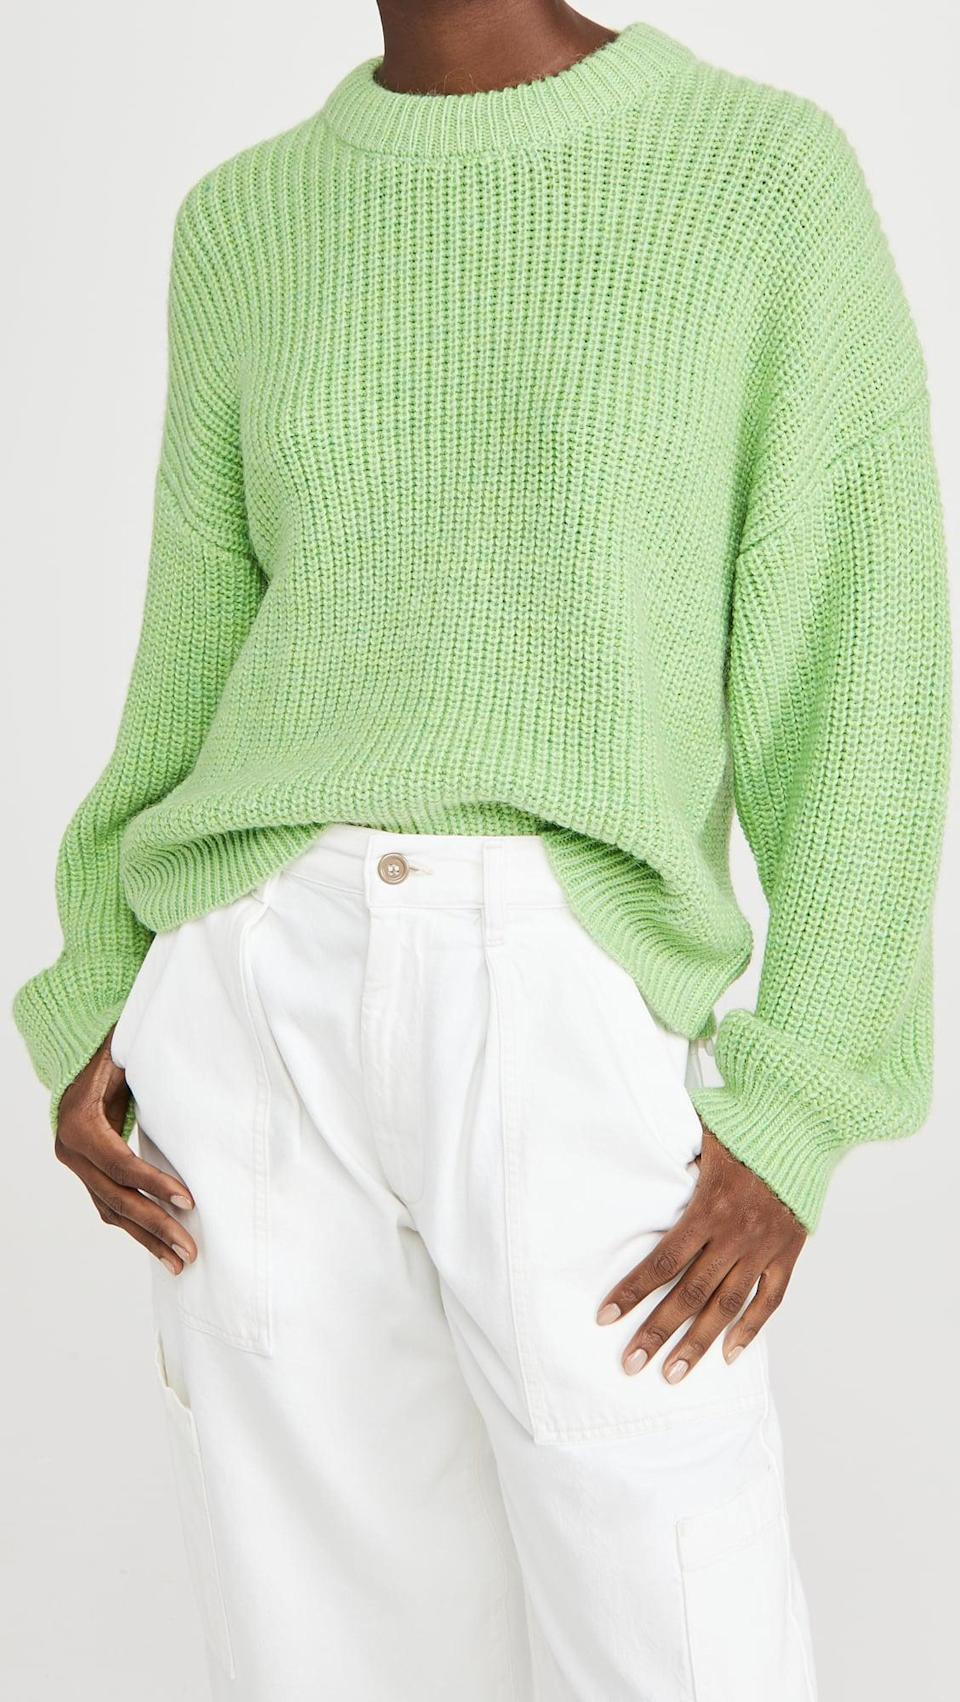 <p>Opt for a vibrant shade with this <span>Scotch & Soda/Maison Scotch Soft Crew Neck Rib Knit Sweater</span> ($225).</p>